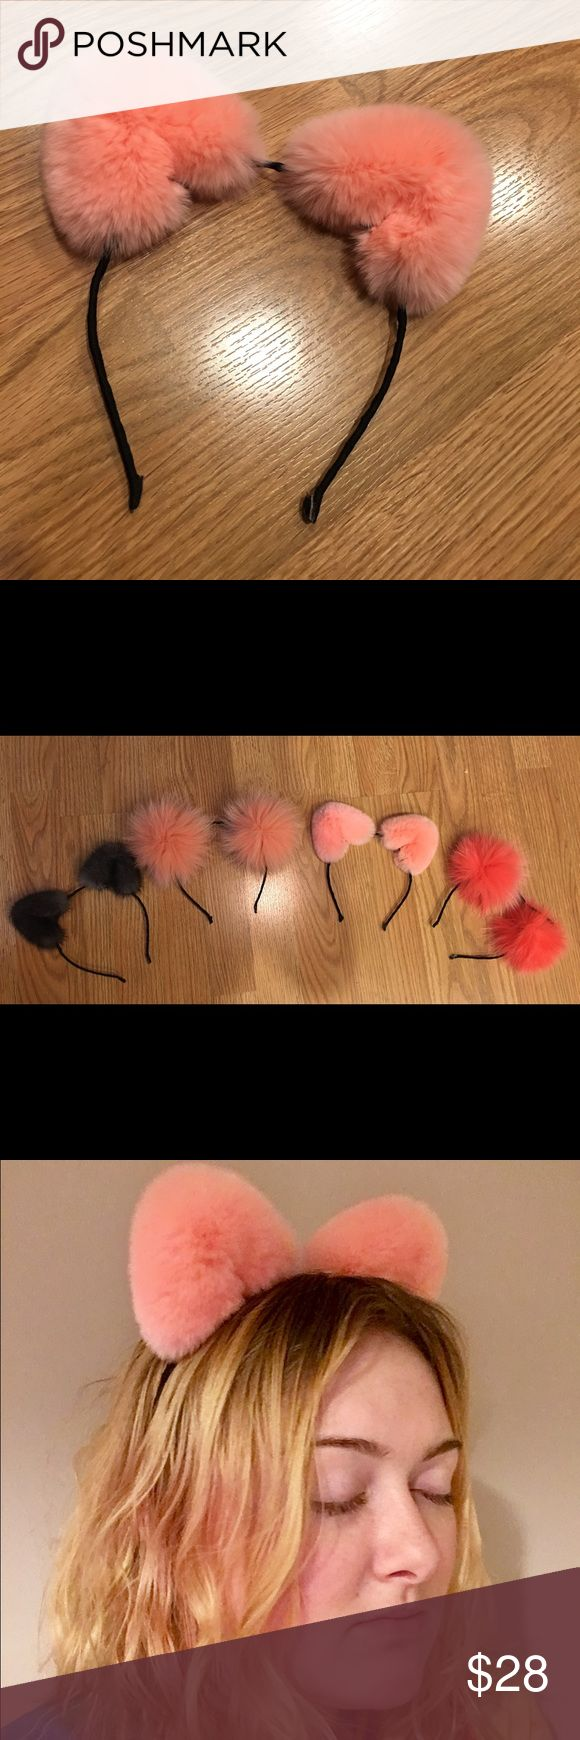 Pink rex rabbit fur Ariana Grande style cat ears Fun, spunky Ariana Grande style fur cat ears. Real rex rabbit fur. The softest fur you can buy! So fuzzy! Adorable pink fur wrapped and affixed around black cat ear headband frame. Perfect for parties, costumes, or everyday flair! Custom made, brand new with tags, never been worn. Check other listings for different color combos and fur styles! Accessories Hair Accessories